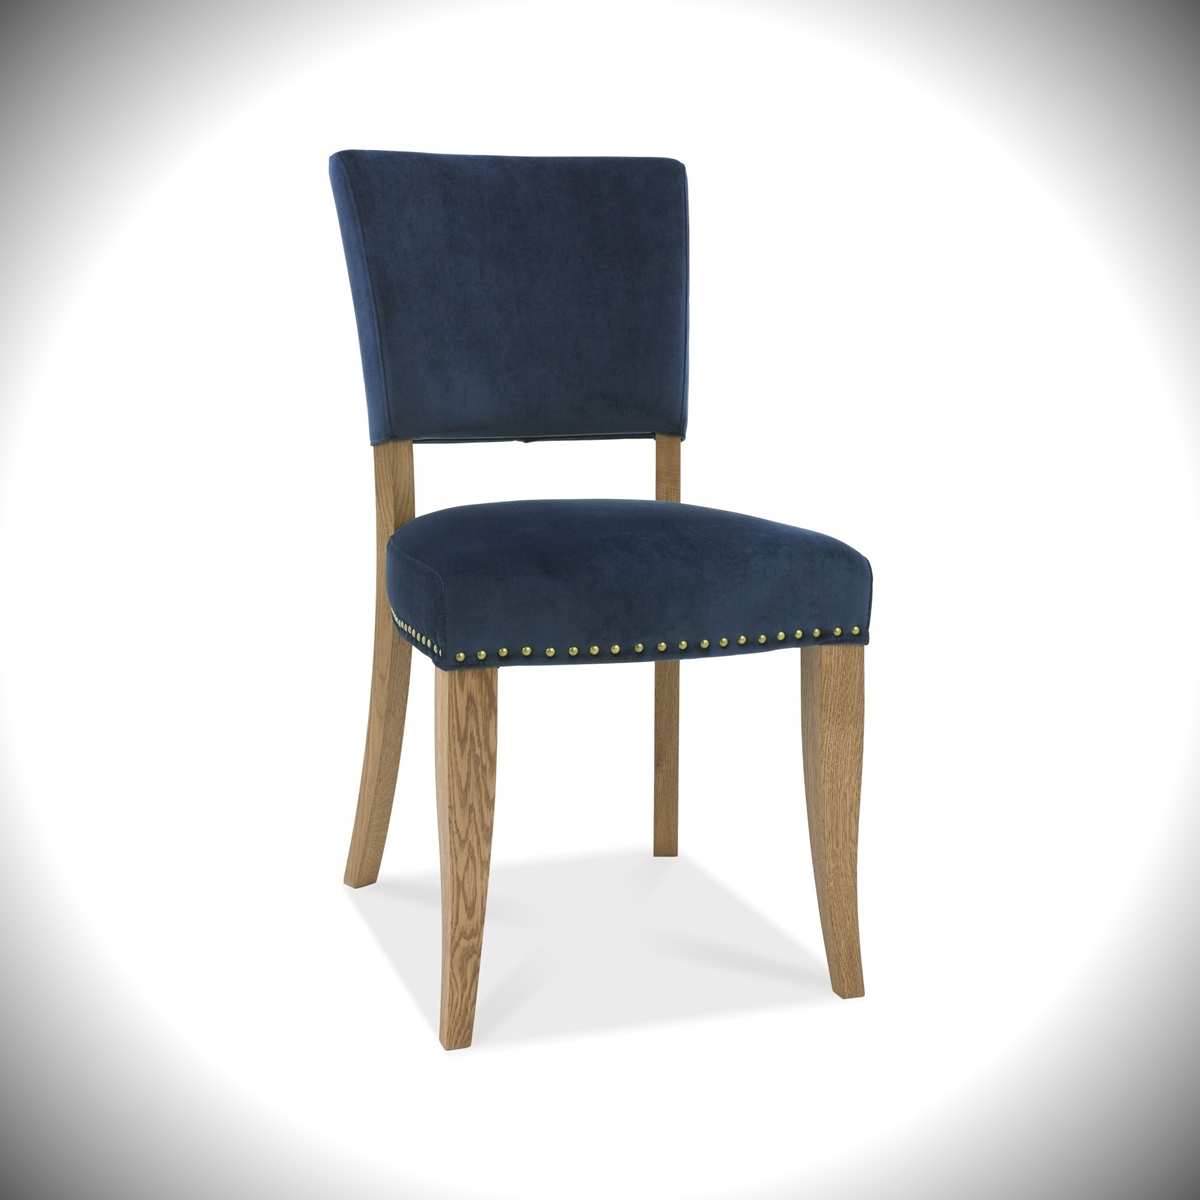 Rustic Oak - Upholstered Velvet Chair - Dark Blue